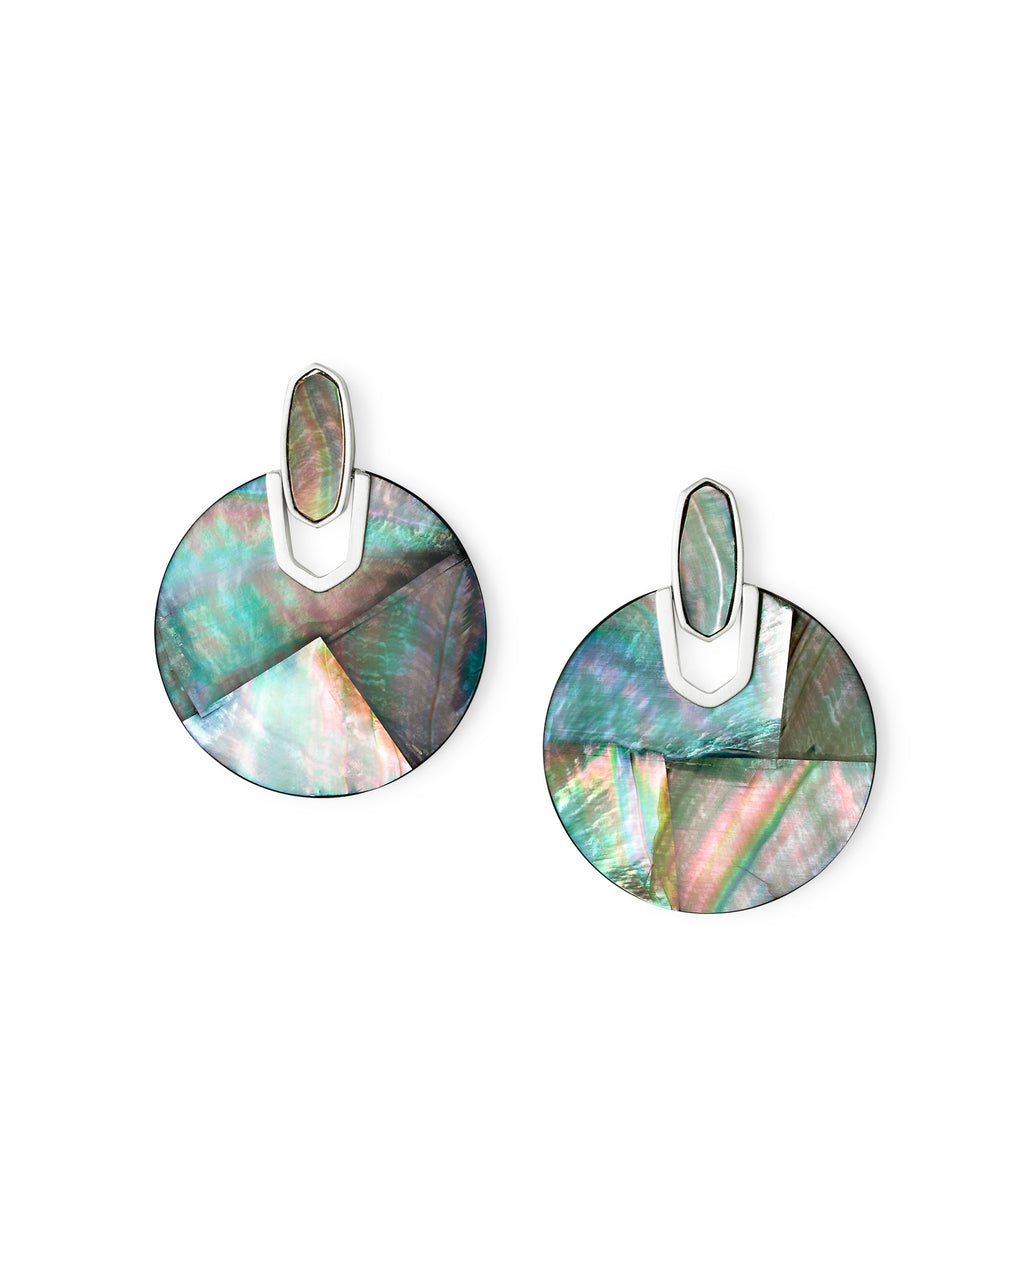 Didi Bright Silver Statement Earrings In Black Mother-Of-Pearl